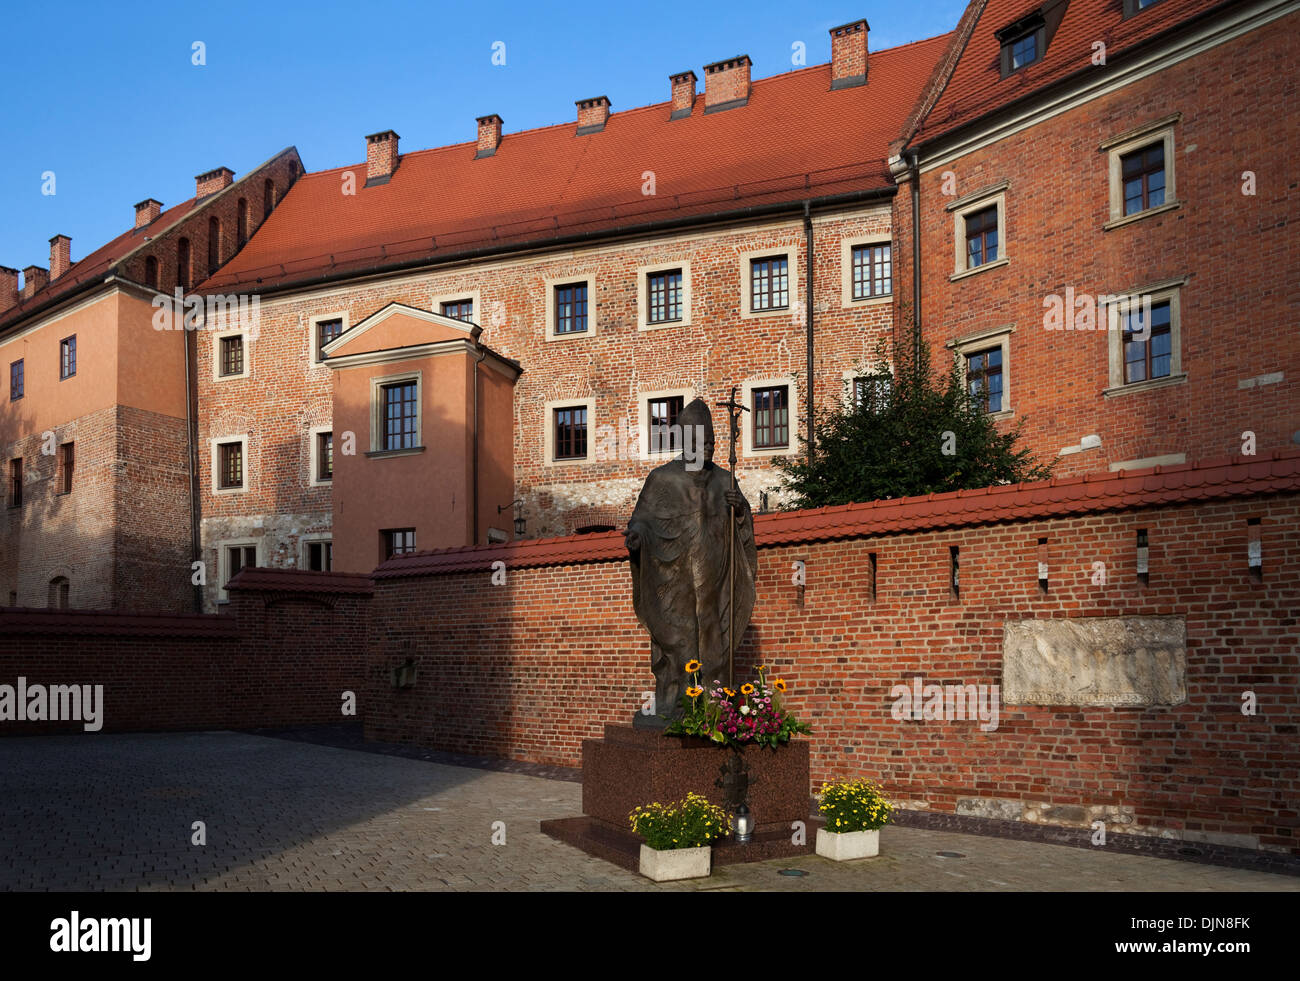 Sculpture of Pope John-Paul II (Father Karol Wojtyla), In the grounds of the Royal Castle on Wawel Hill, Krakow, Poland - Stock Image